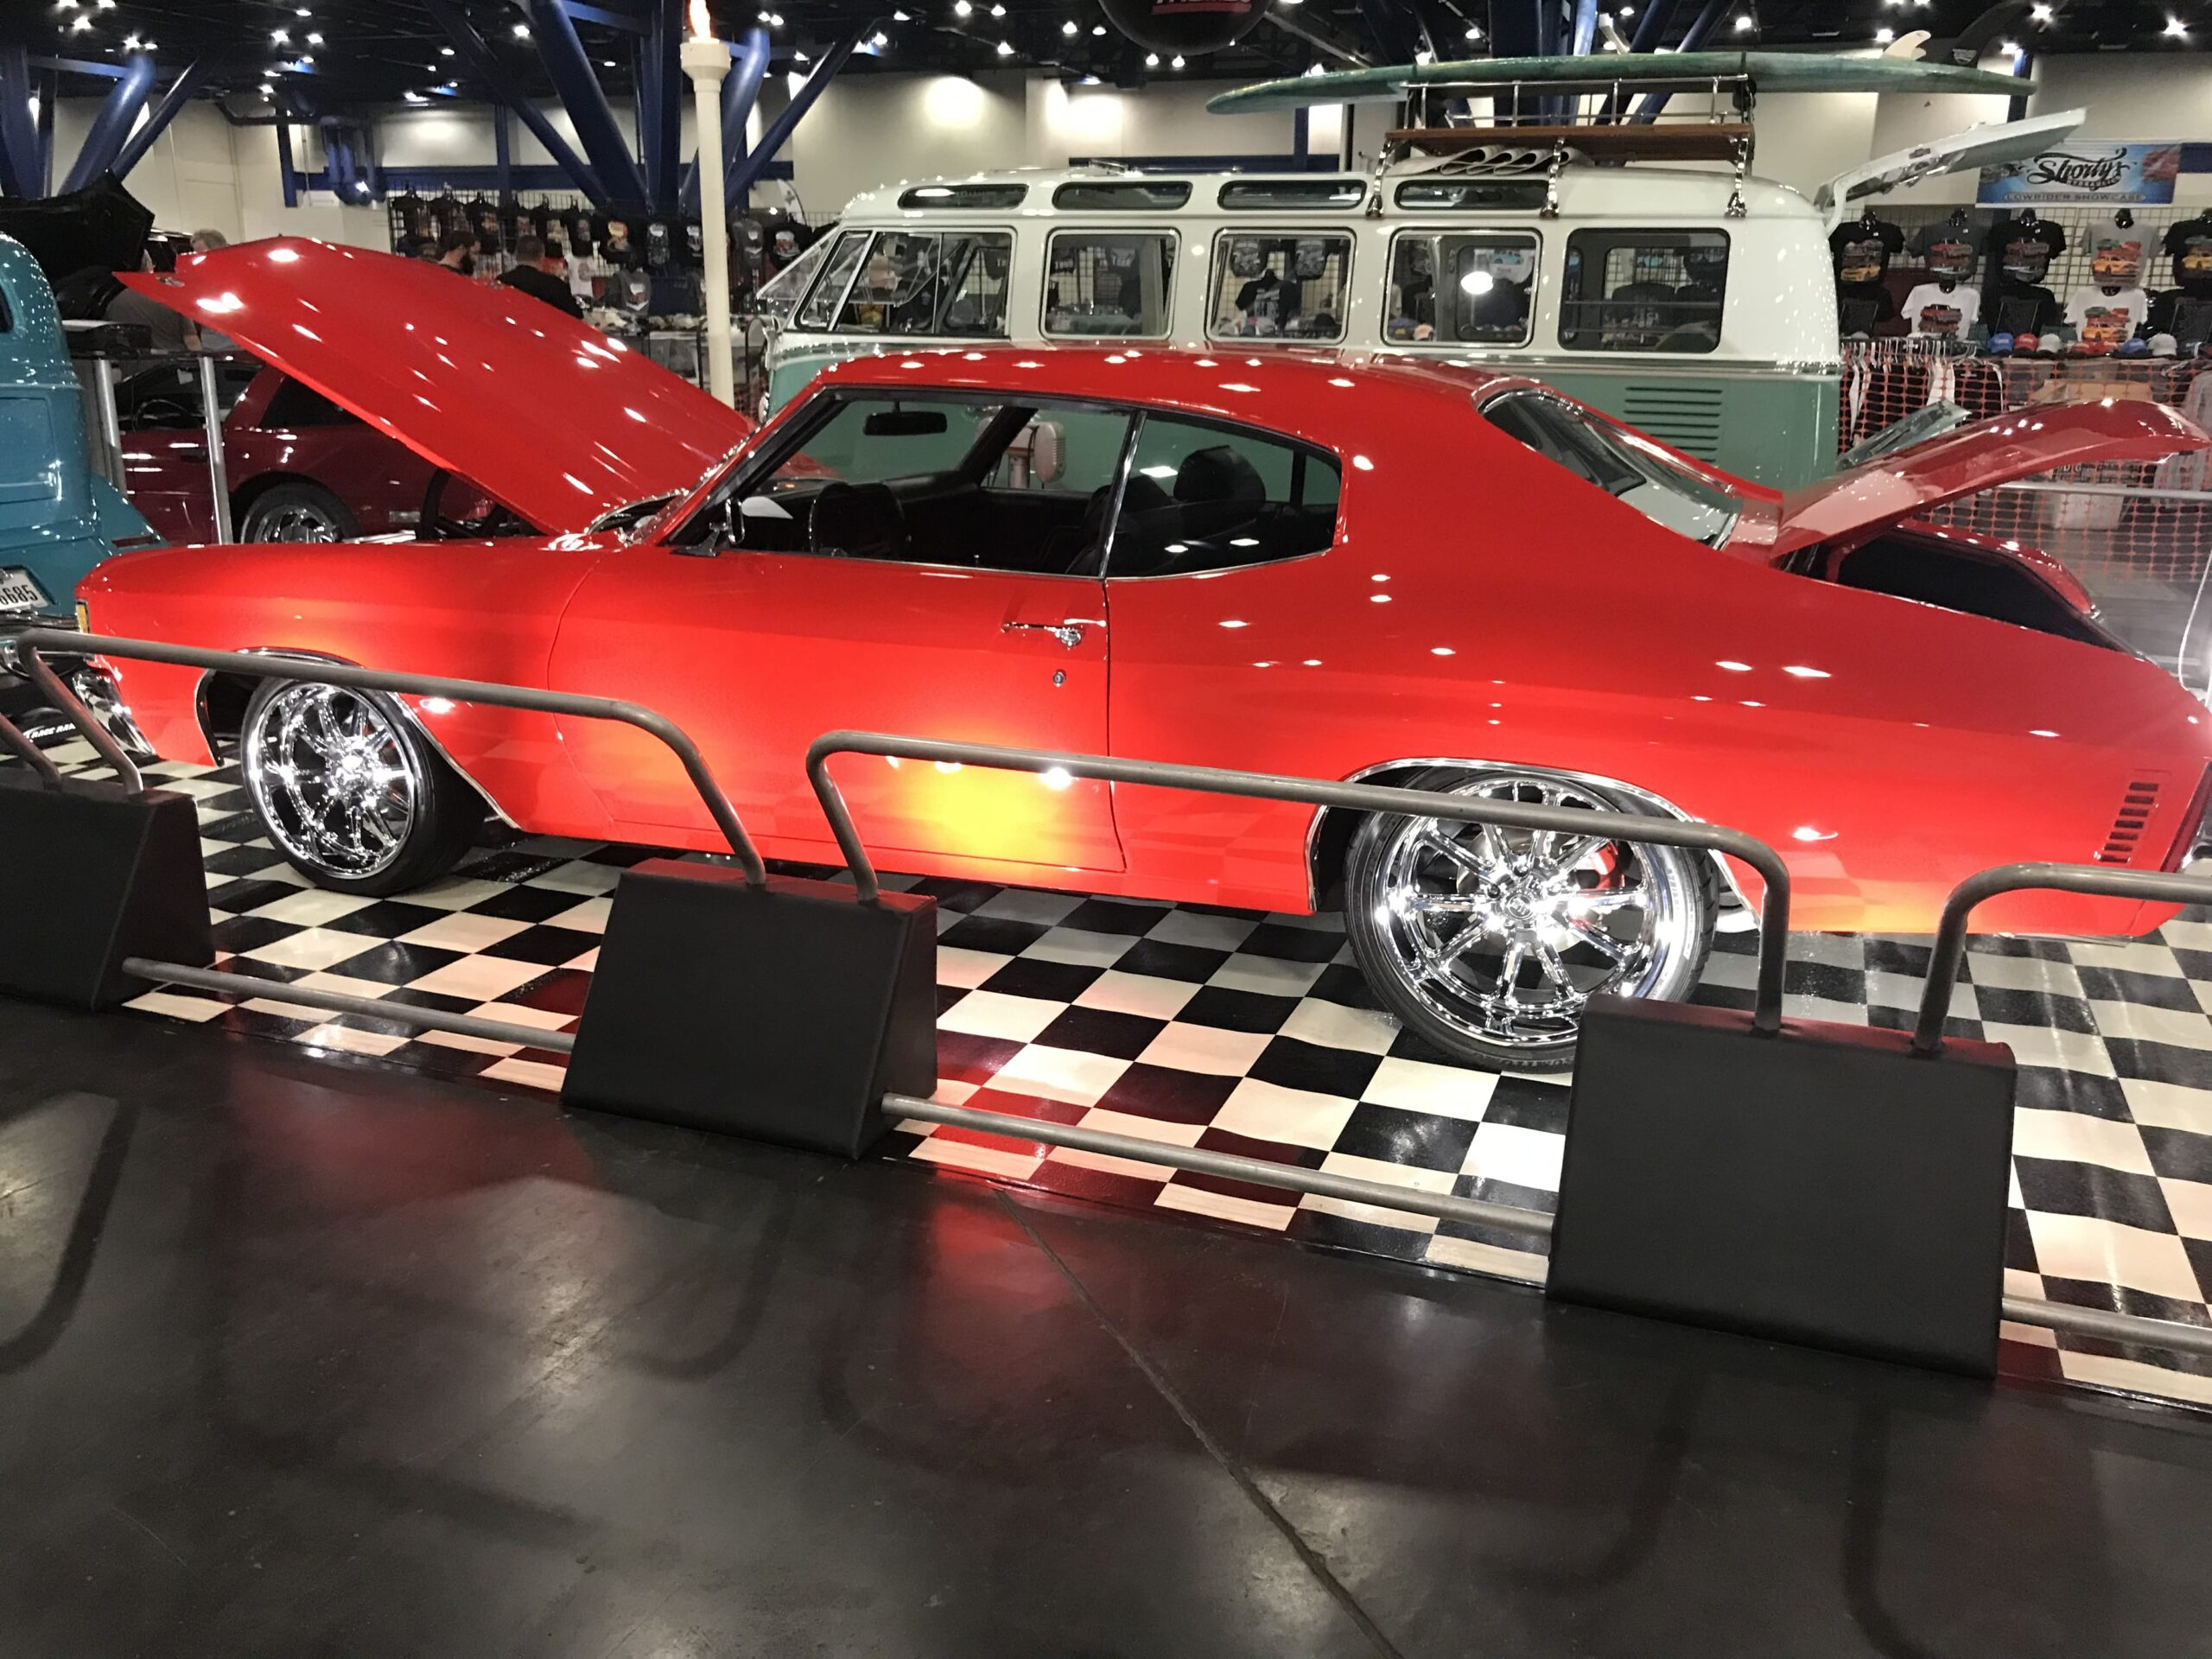 Mark Scott, Pearland, Texas- 1972 Chevy Chevelle